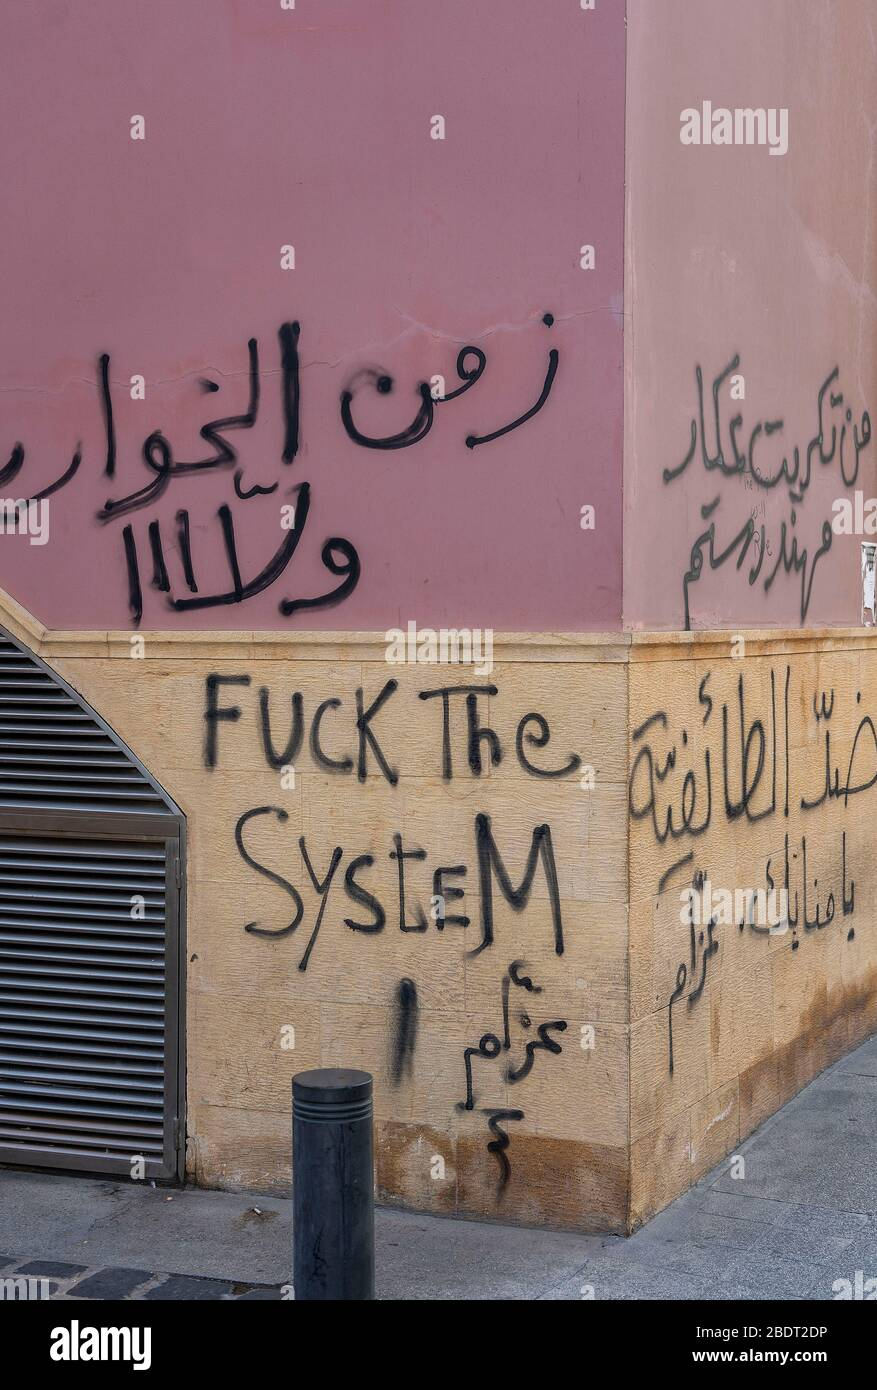 Graffiti with an anti-government message Stock Photo